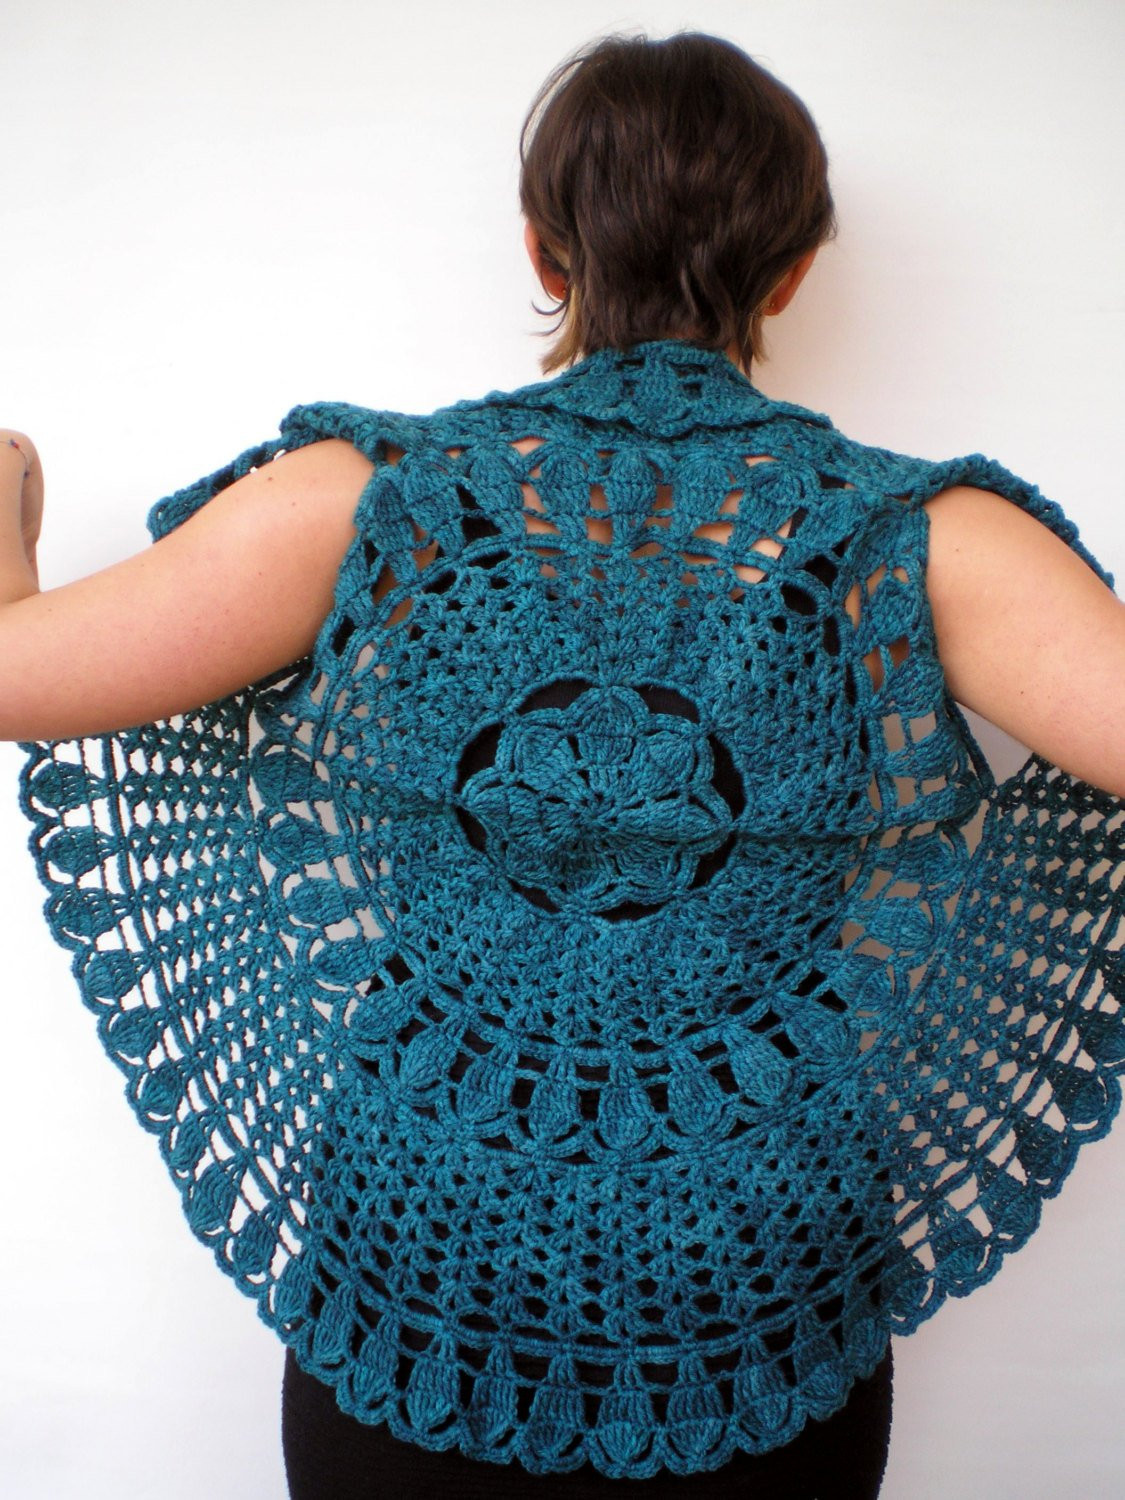 Circle Crochet Elegant Mandala Fashion Shrug Green Vest Woman Hand Crocheted Circle Of Amazing 40 Photos Circle Crochet